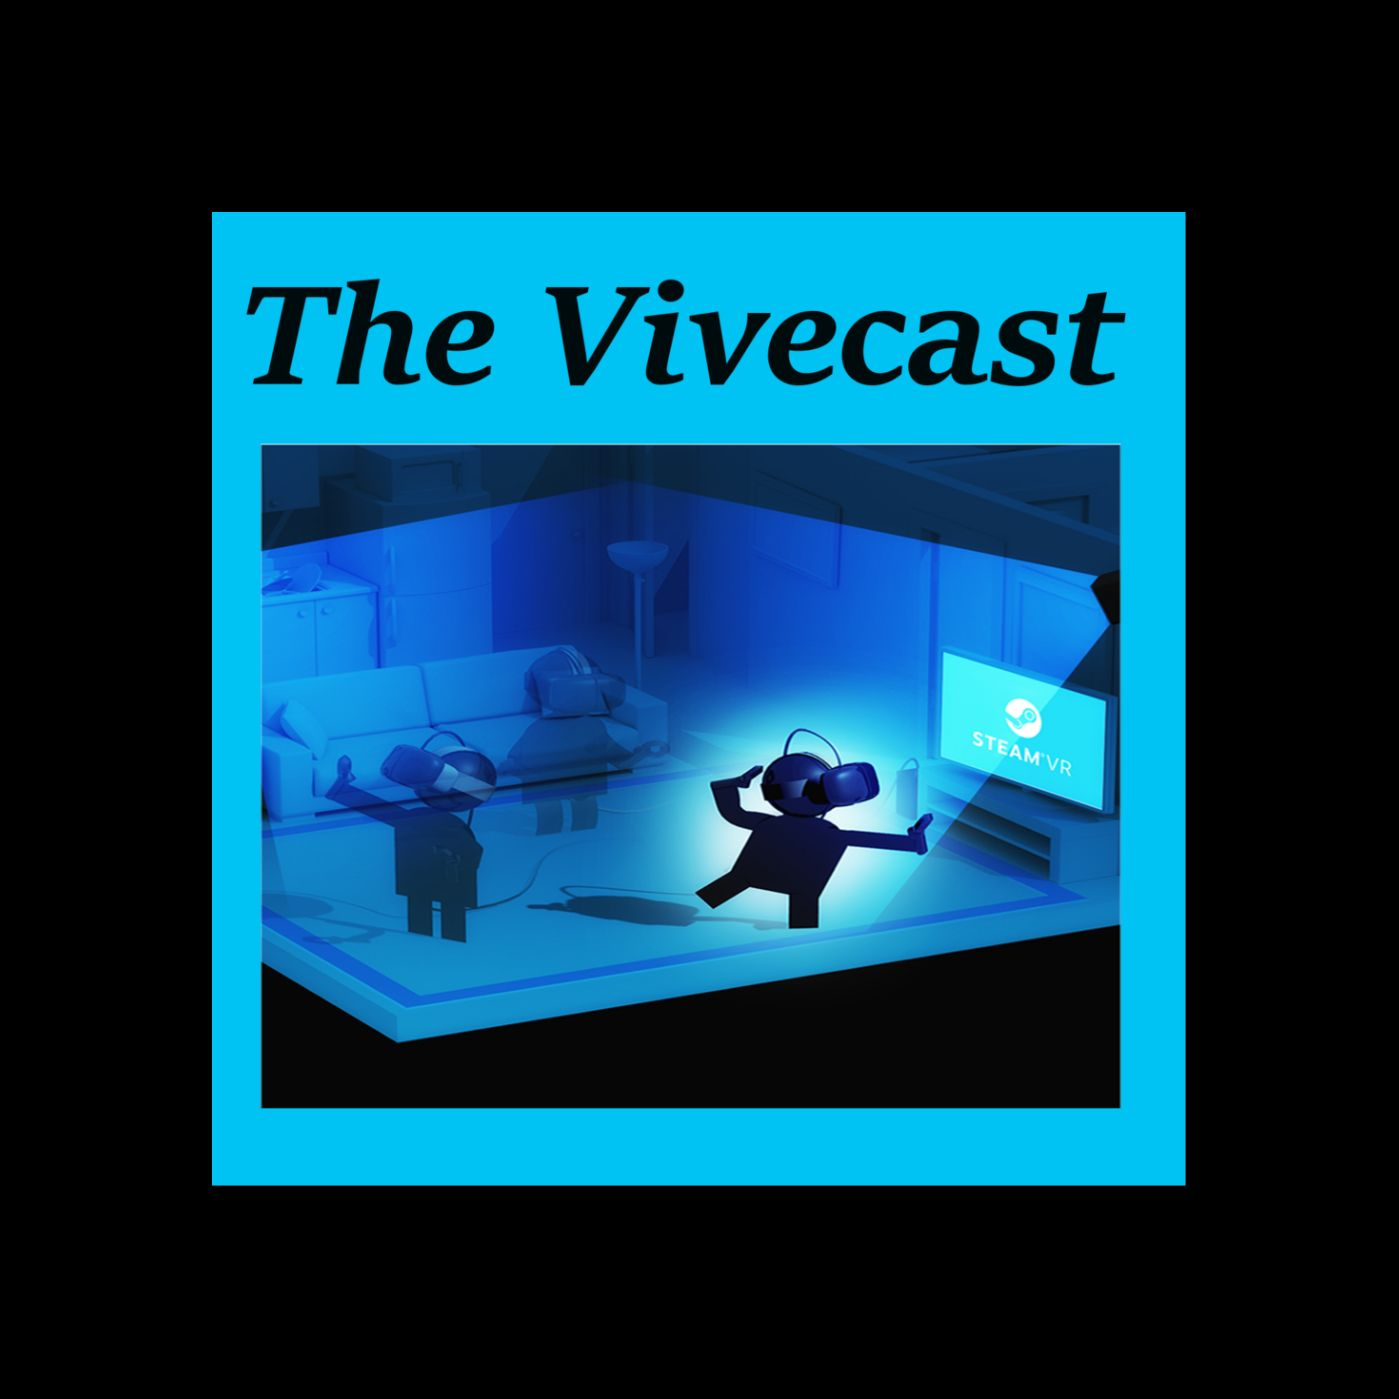 The Vivecast